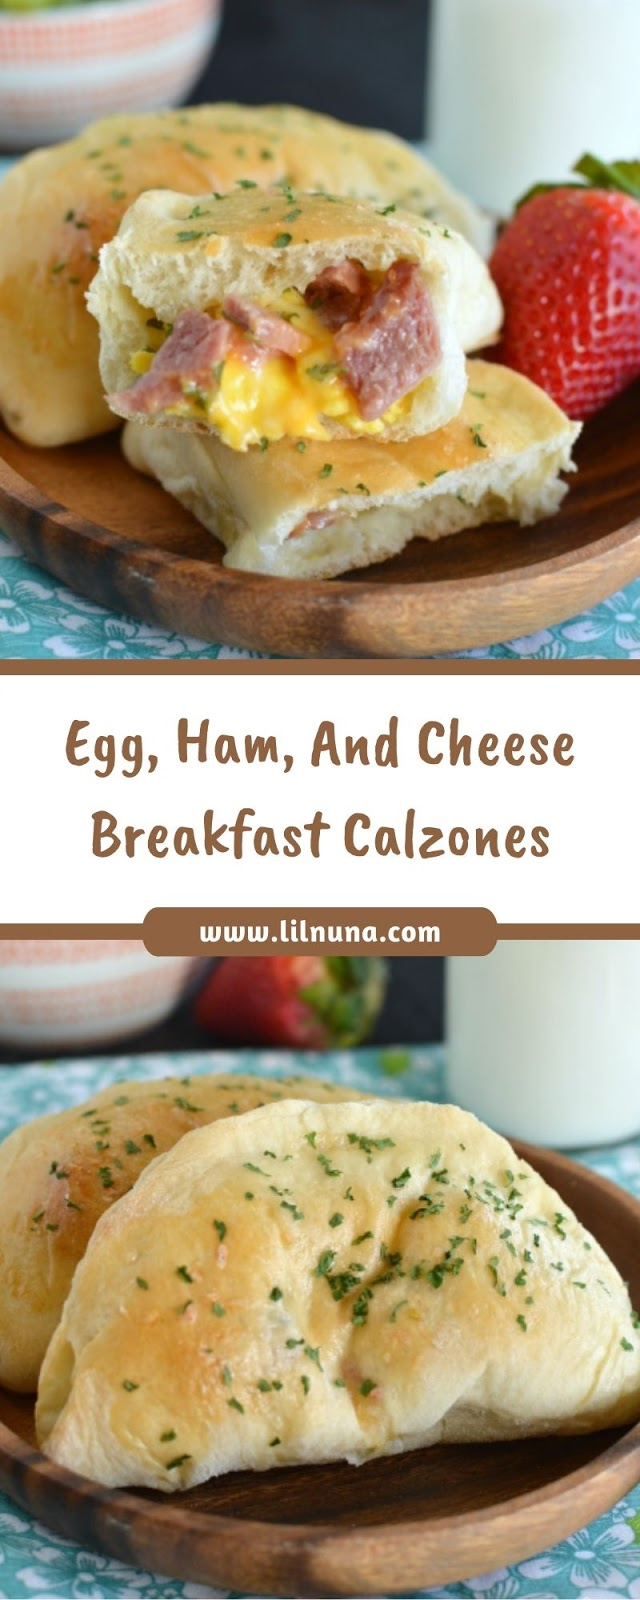 Egg, Ham, And Cheese Breakfast Calzones